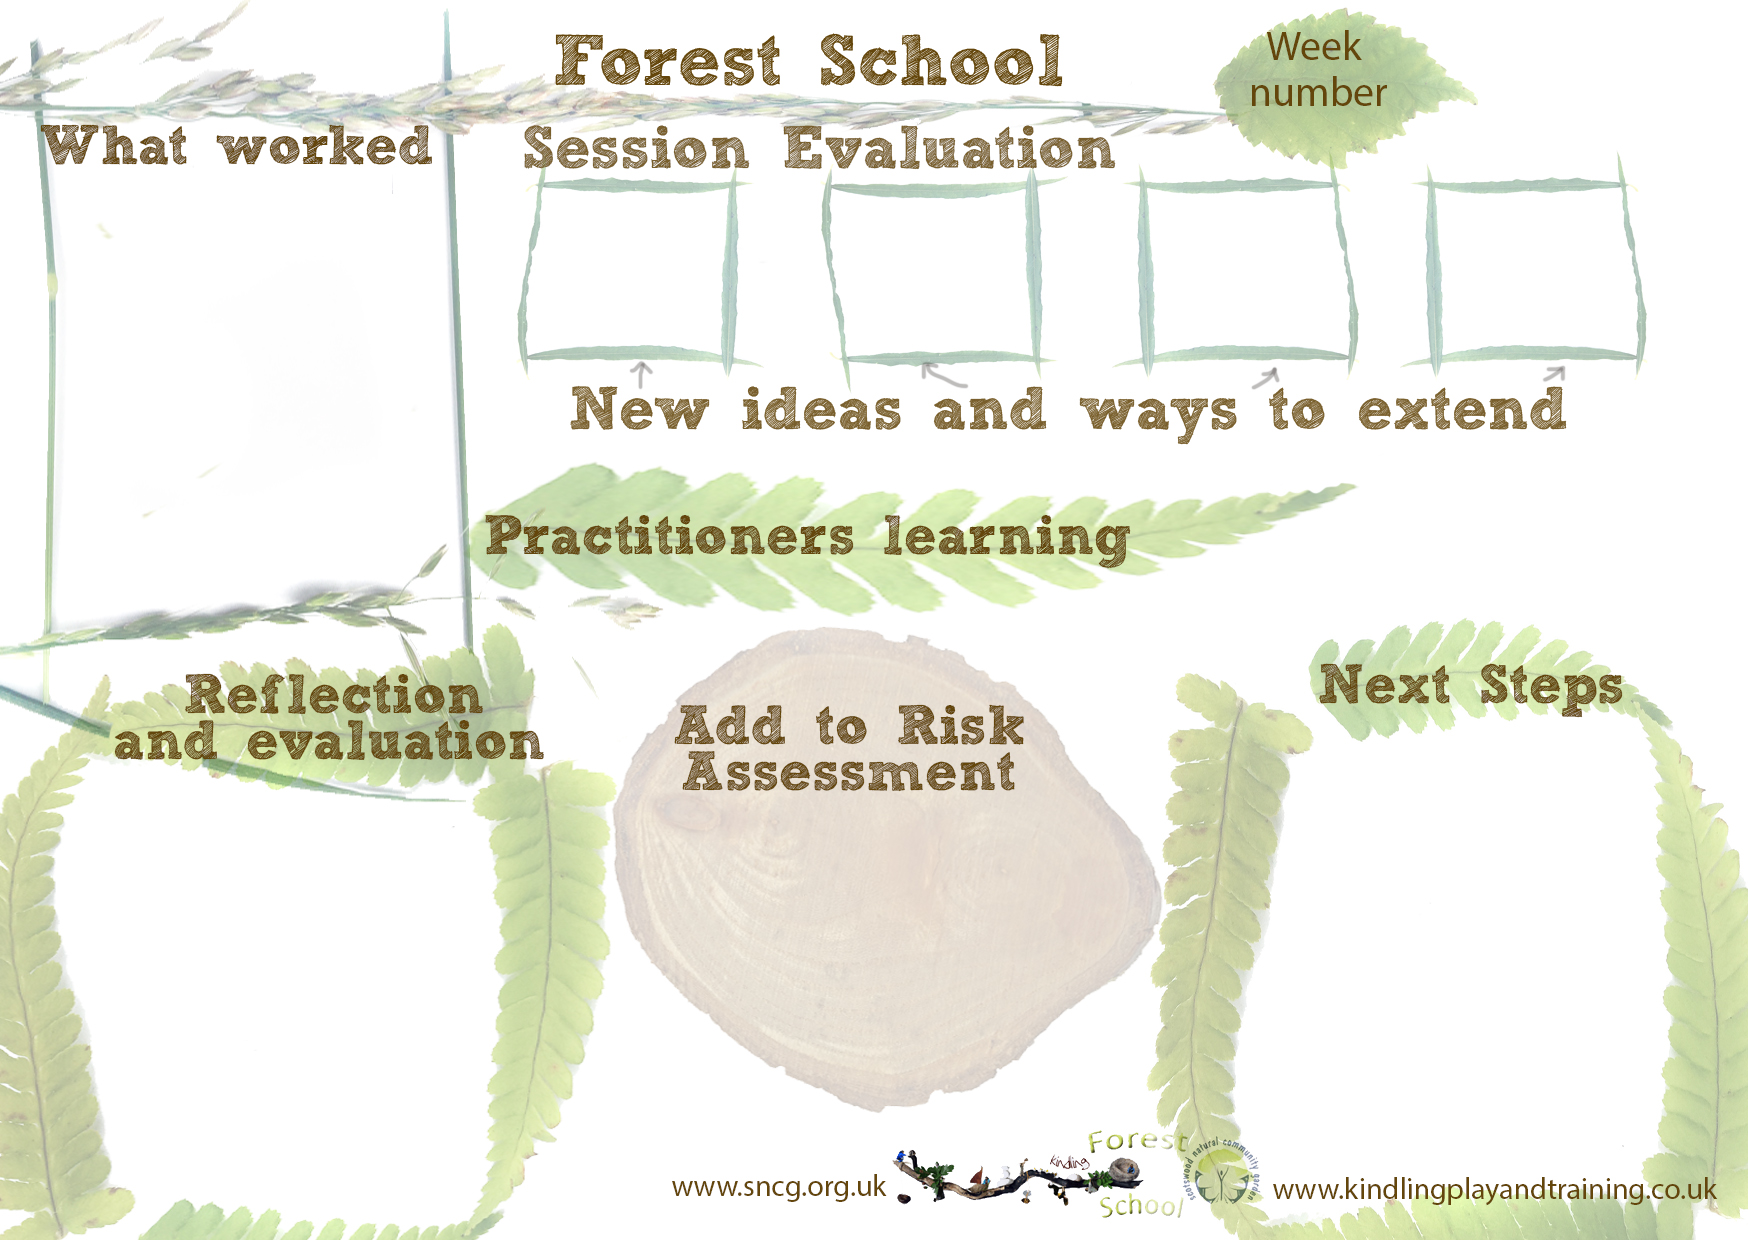 Forest School evaluation template | Kindling Play and Training